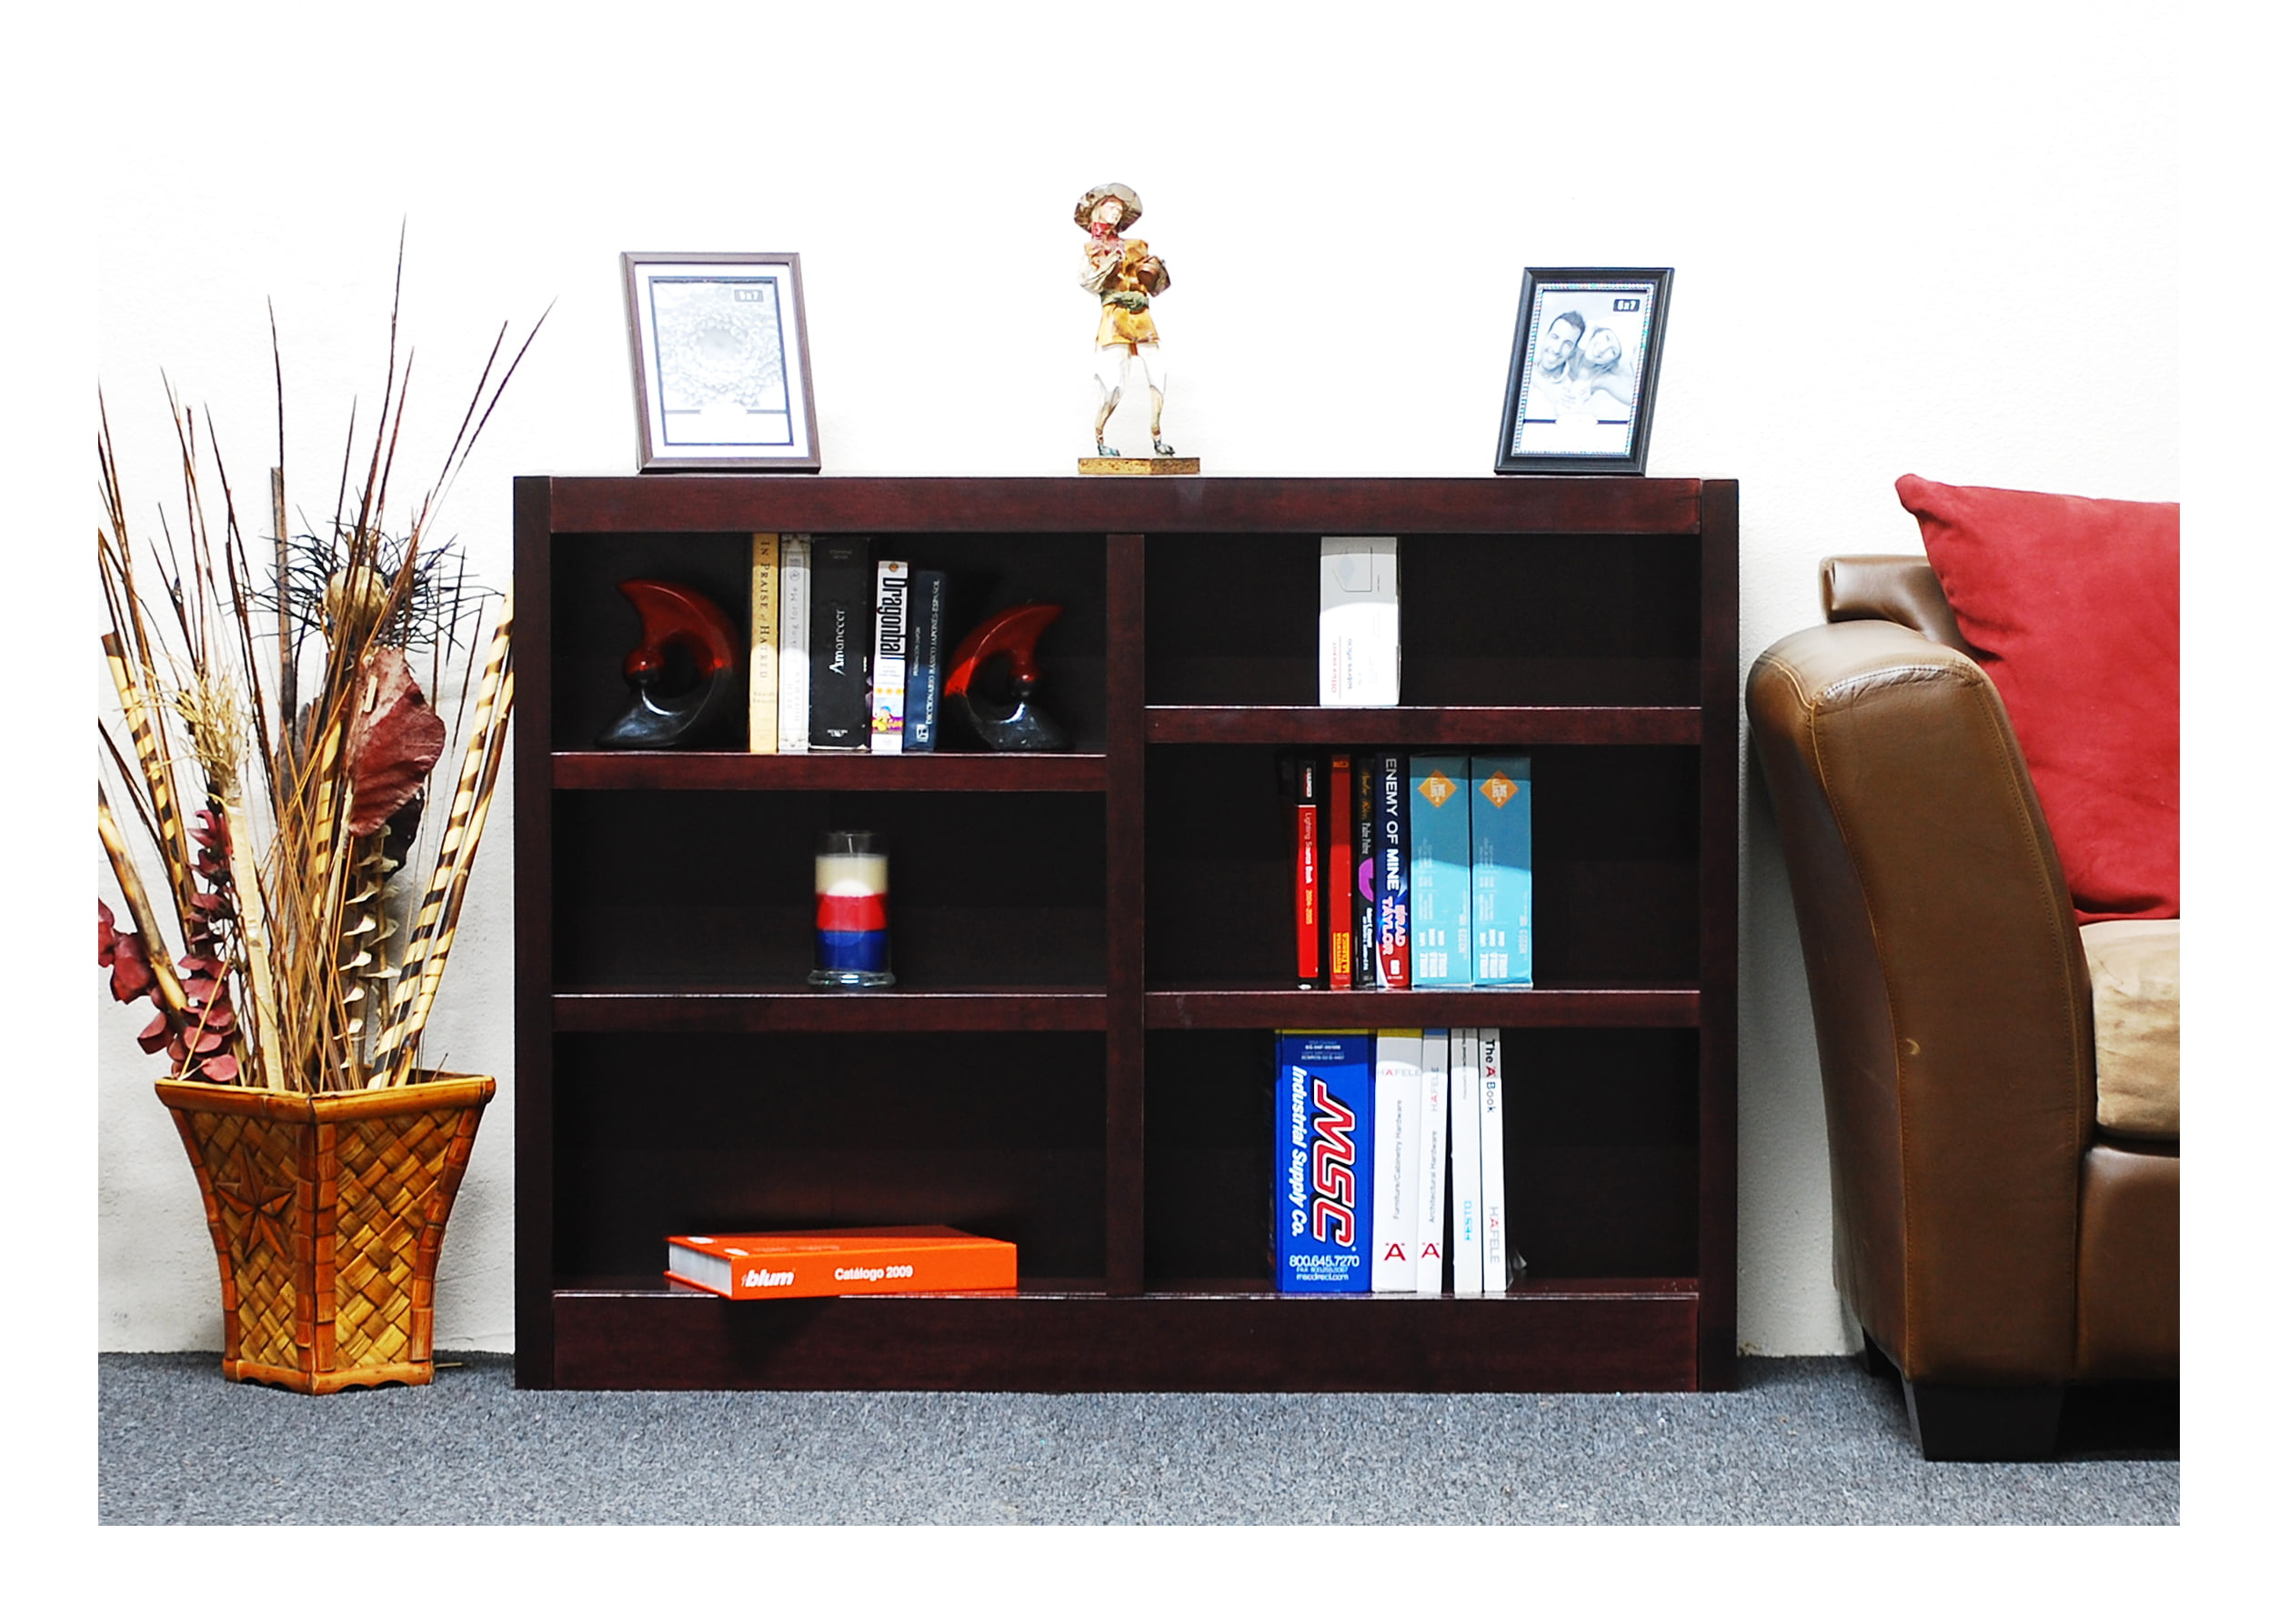 Concepts In Wood 6 Shelf Double Wide Wood Bookcase 36 Inch